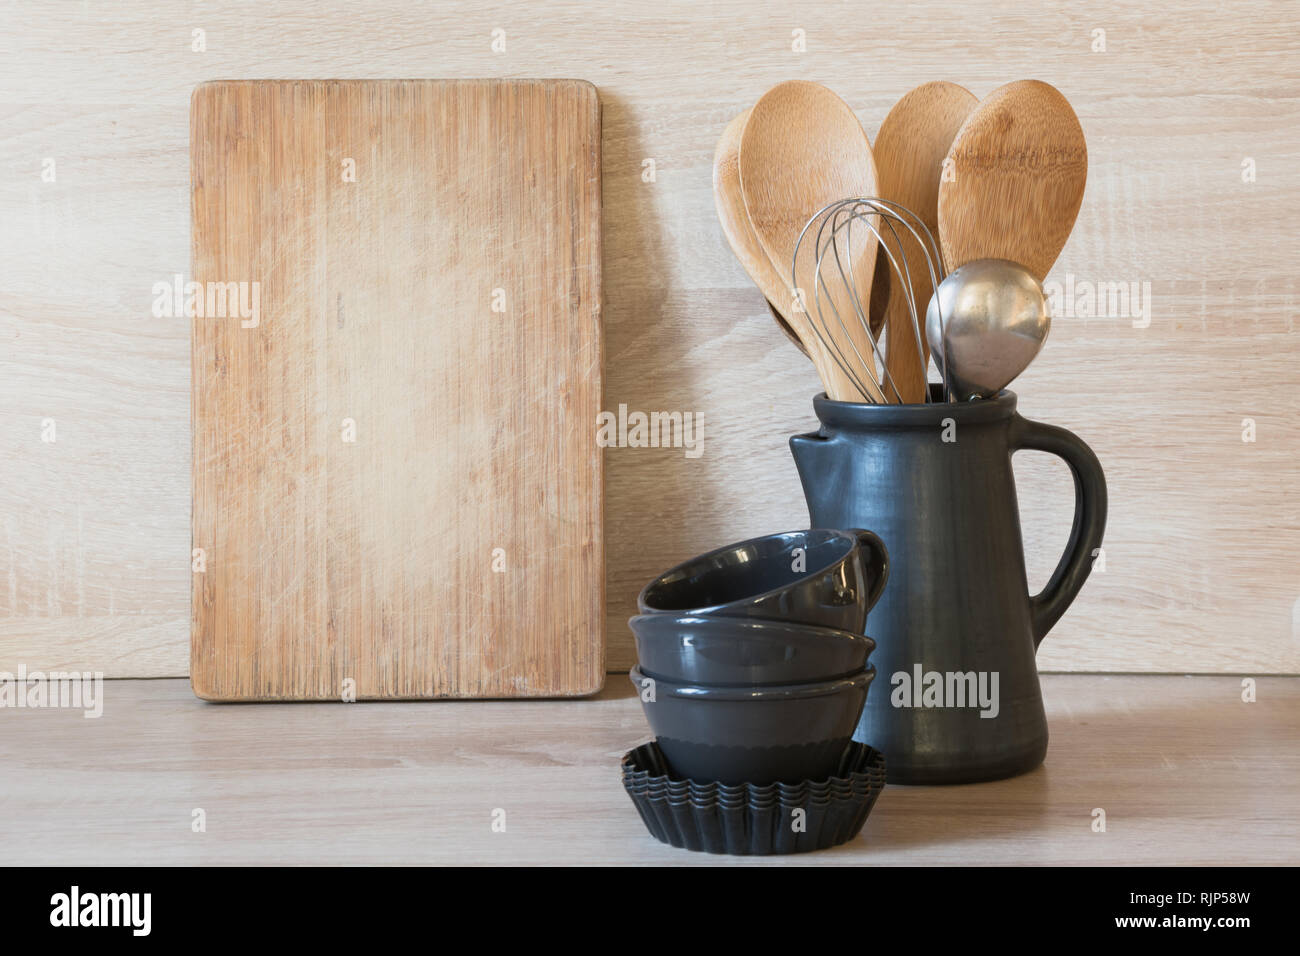 Crockery, clayware utensils and different stuff on wooden tabletop. Kitchen still life as background - Stock Image